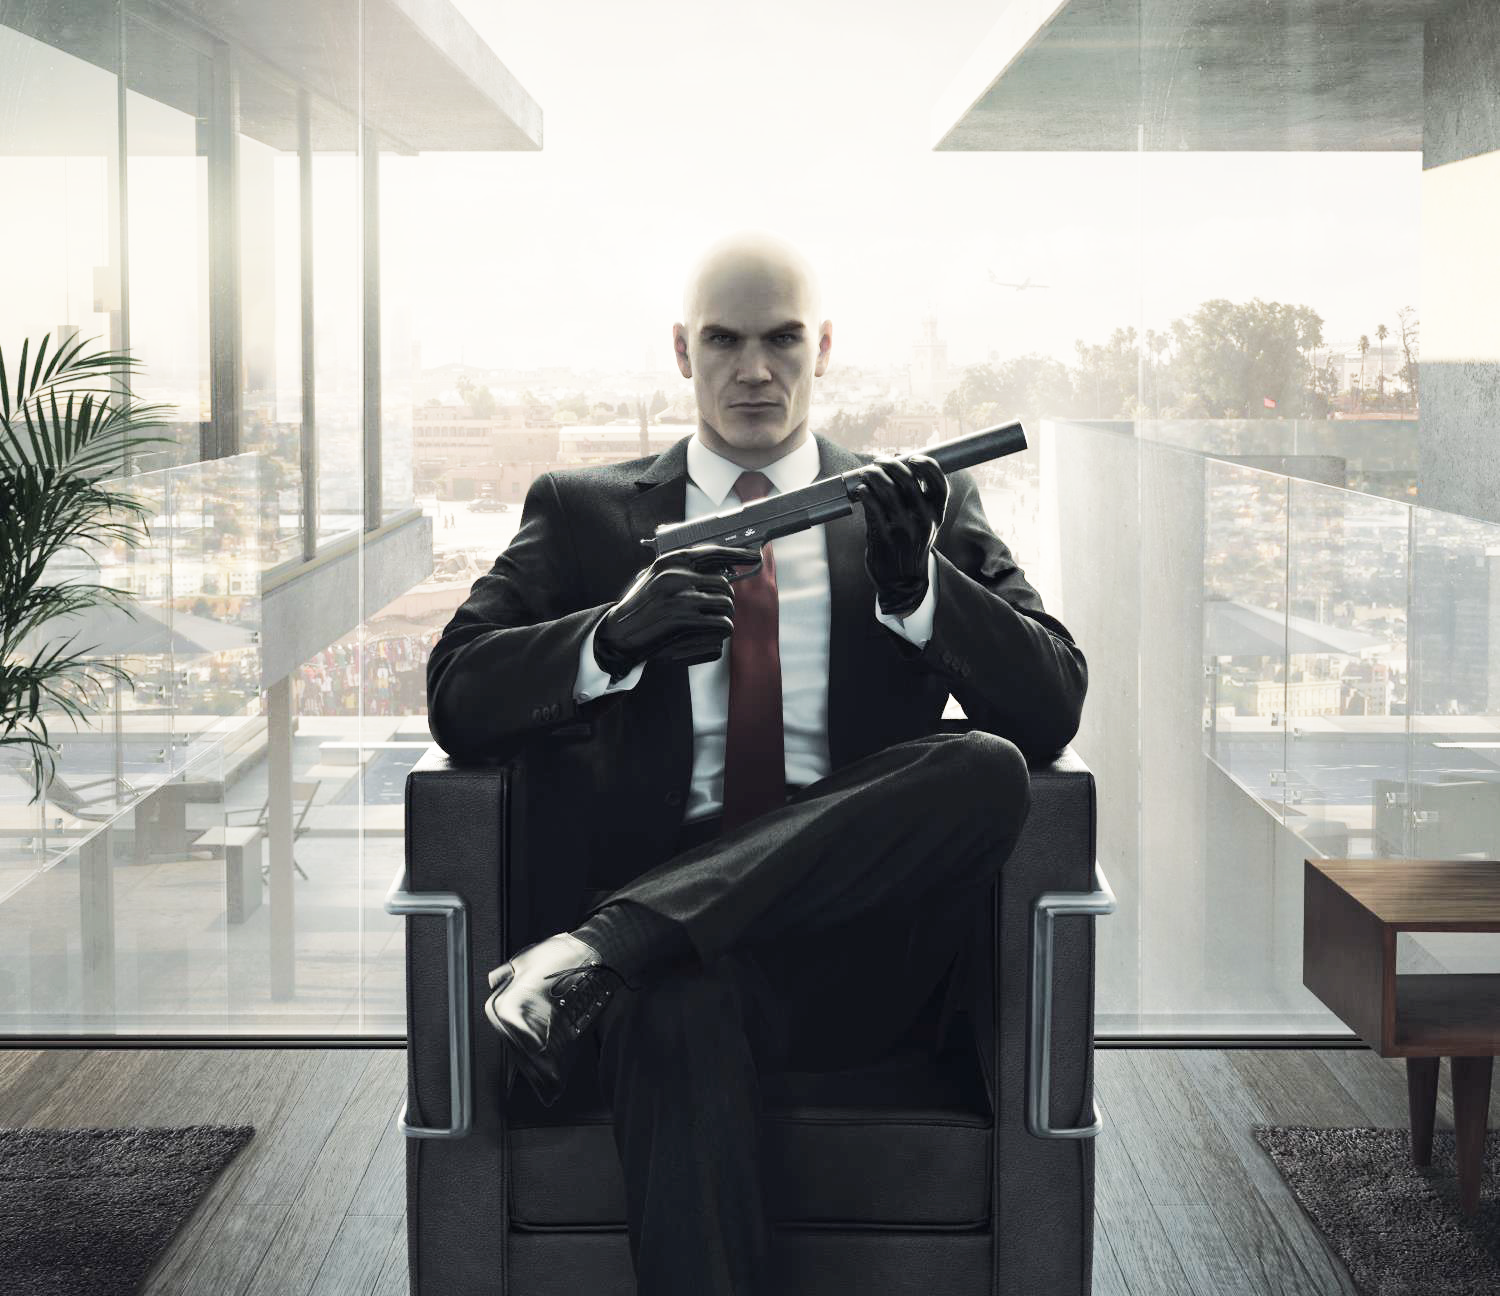 Hitman episode one starts a piece by piece success